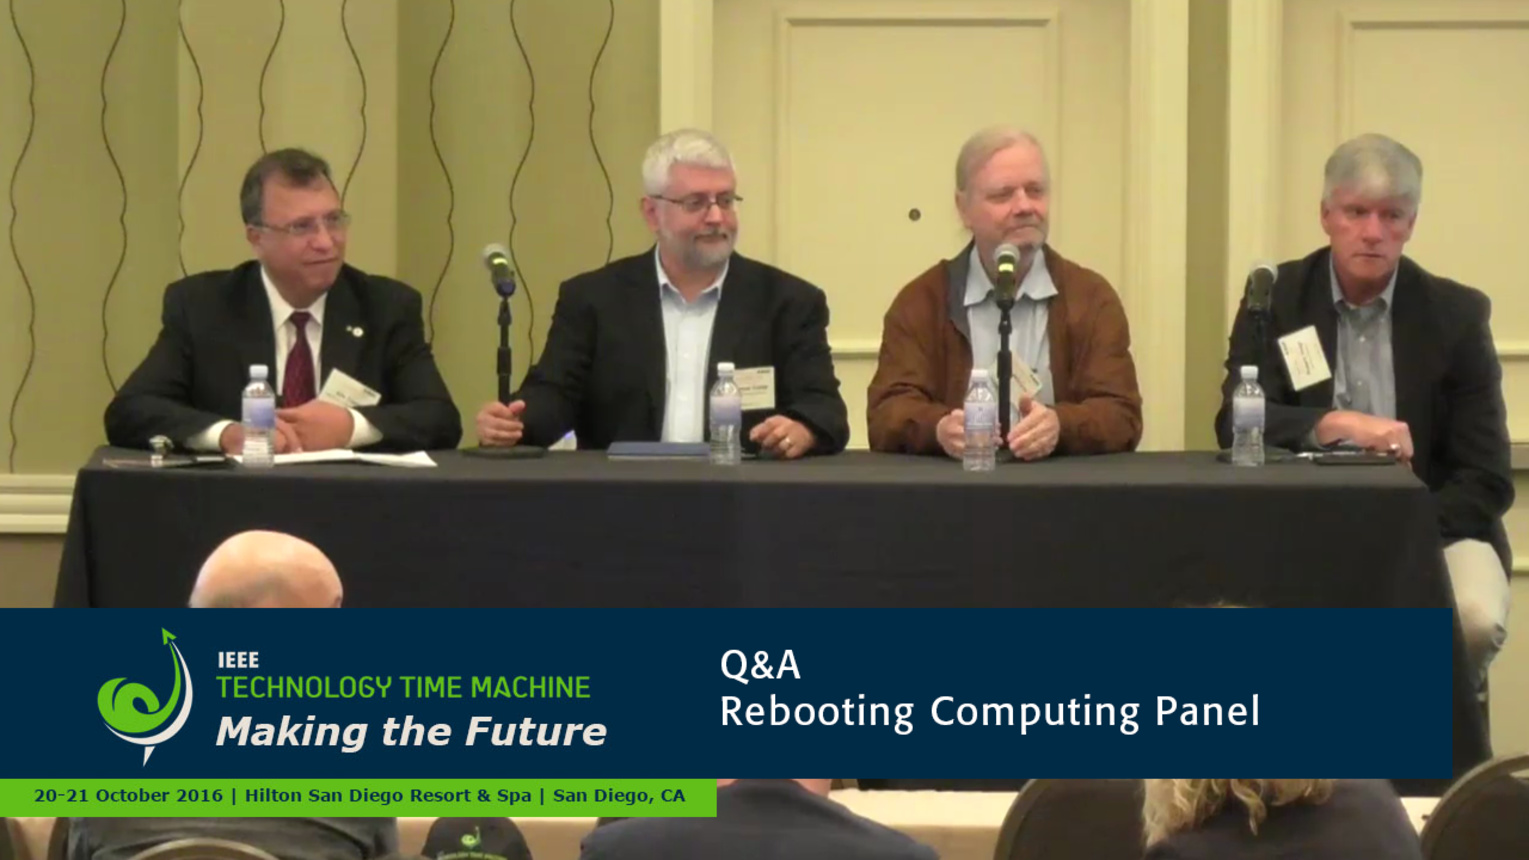 Panel Q&A - Rebooting Computing: 2016 Technology Time Machine